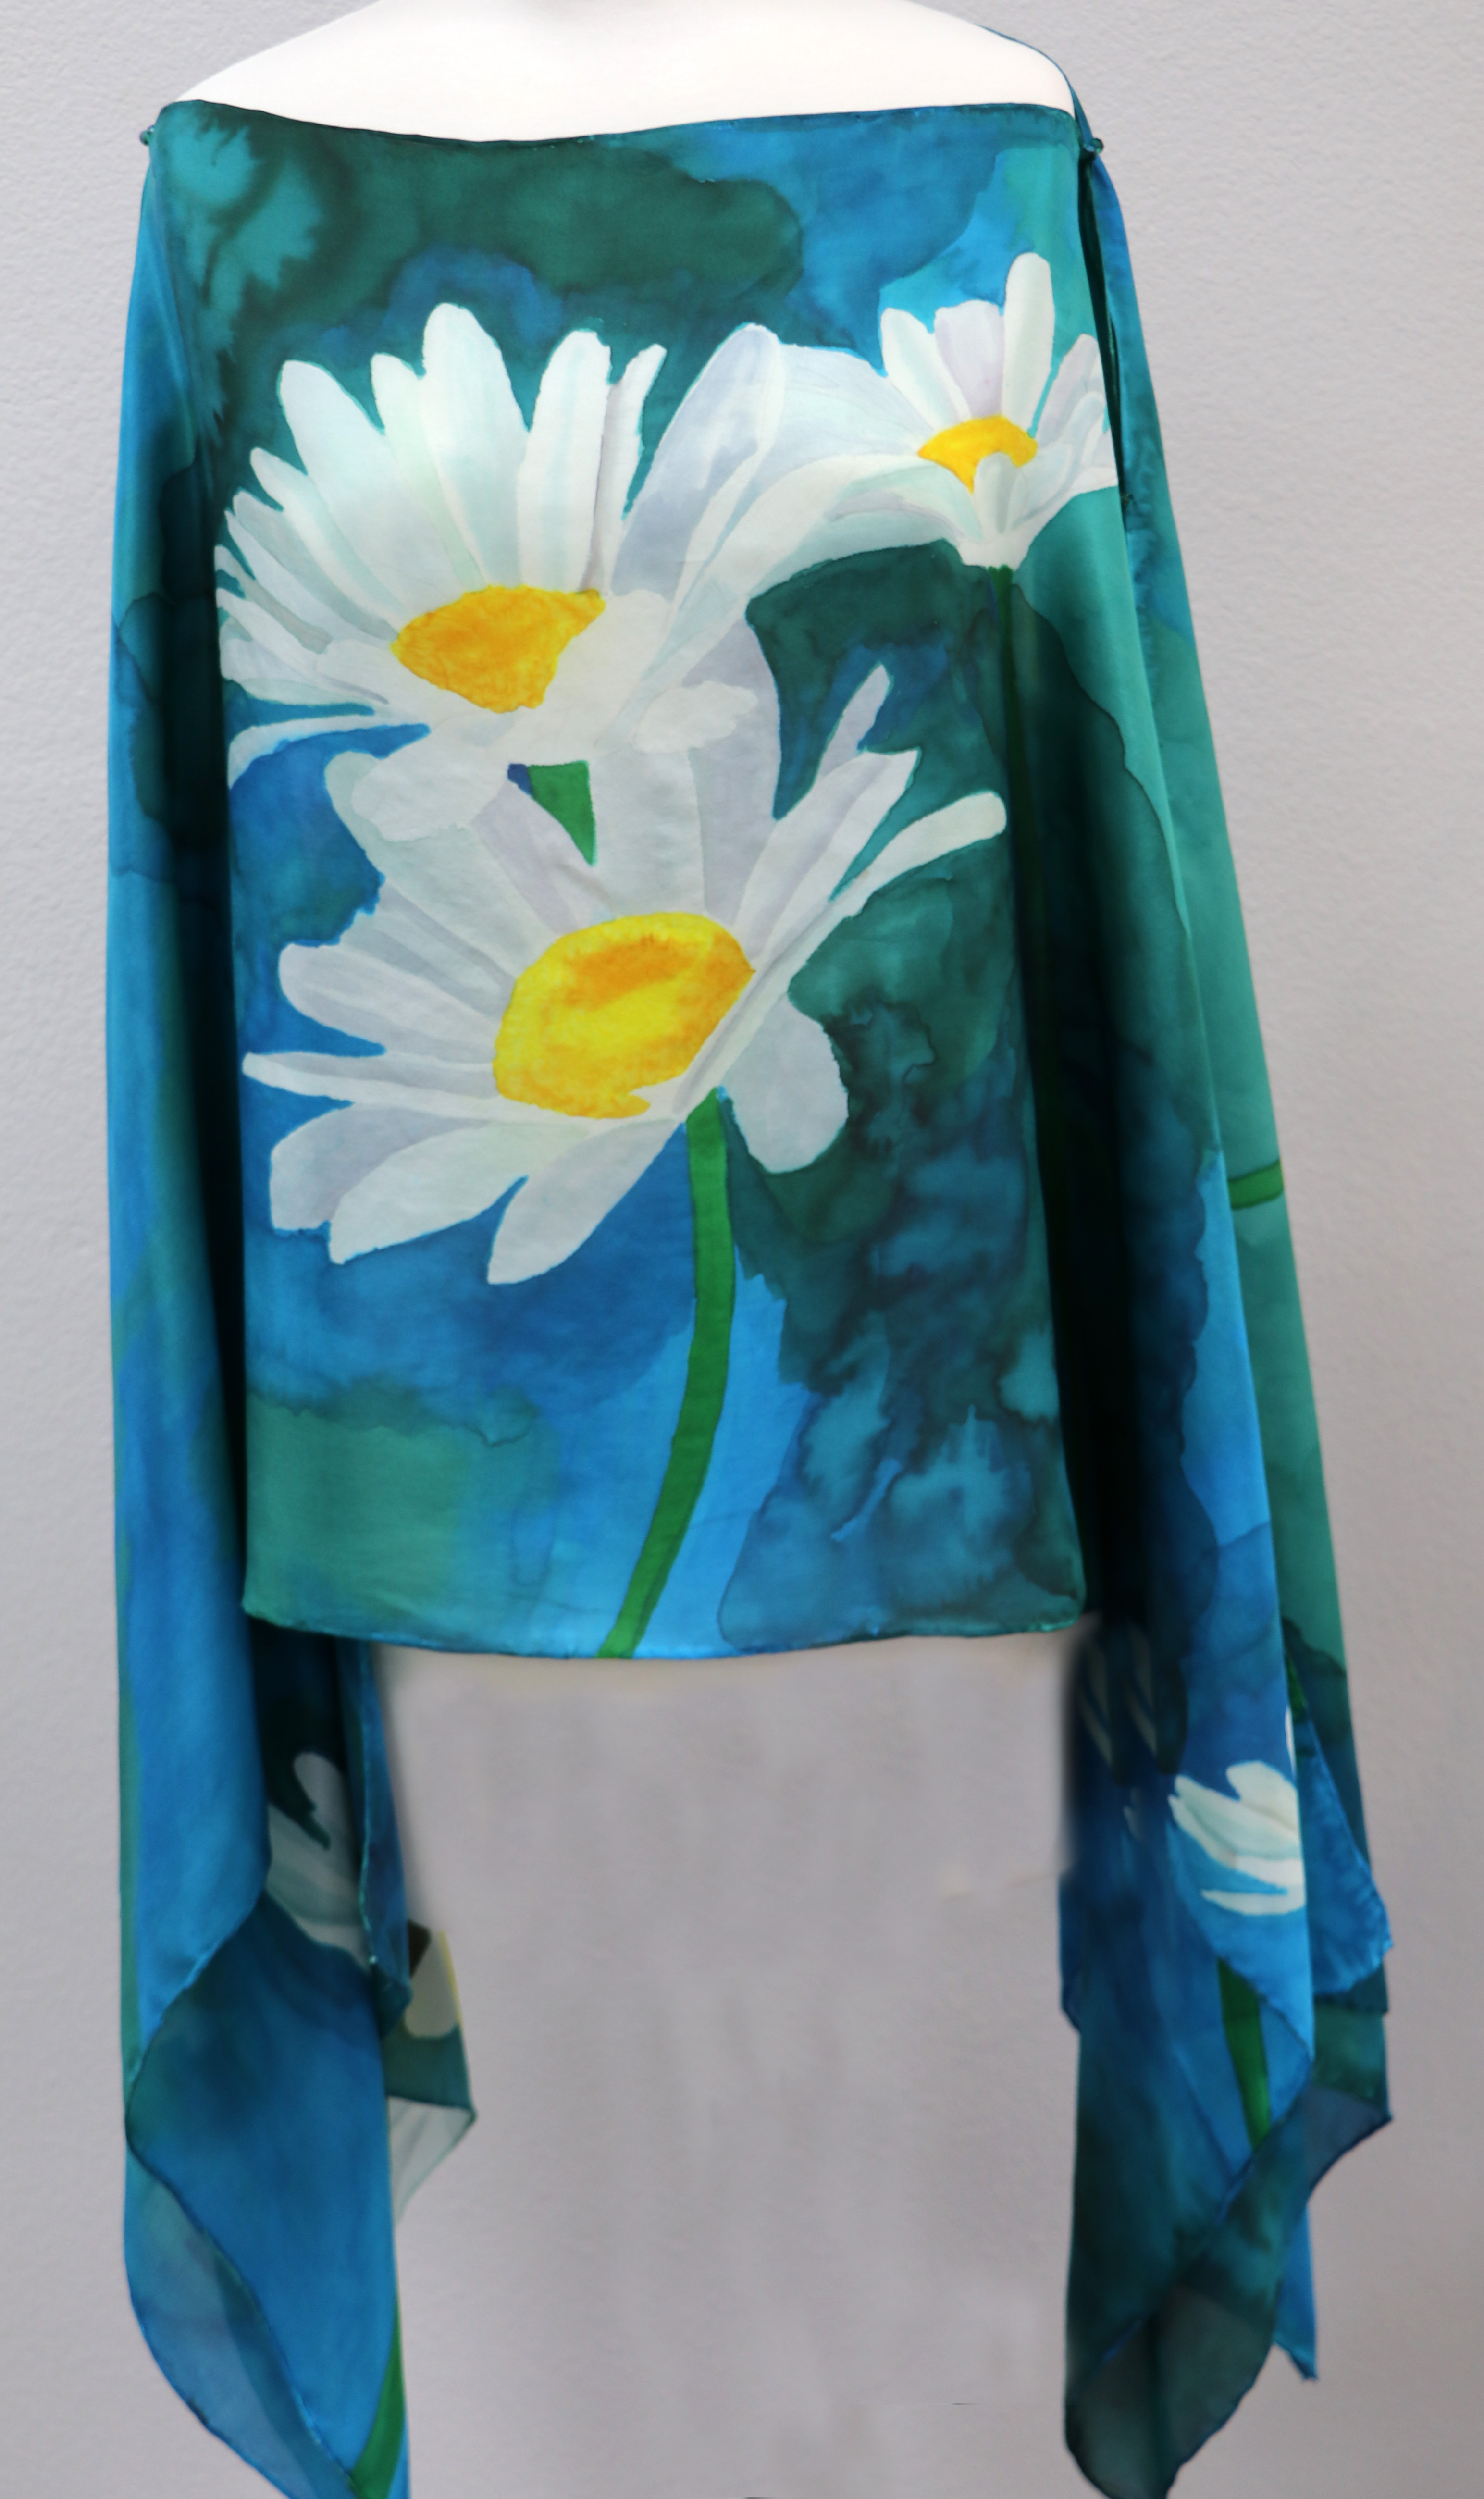 Daisies front